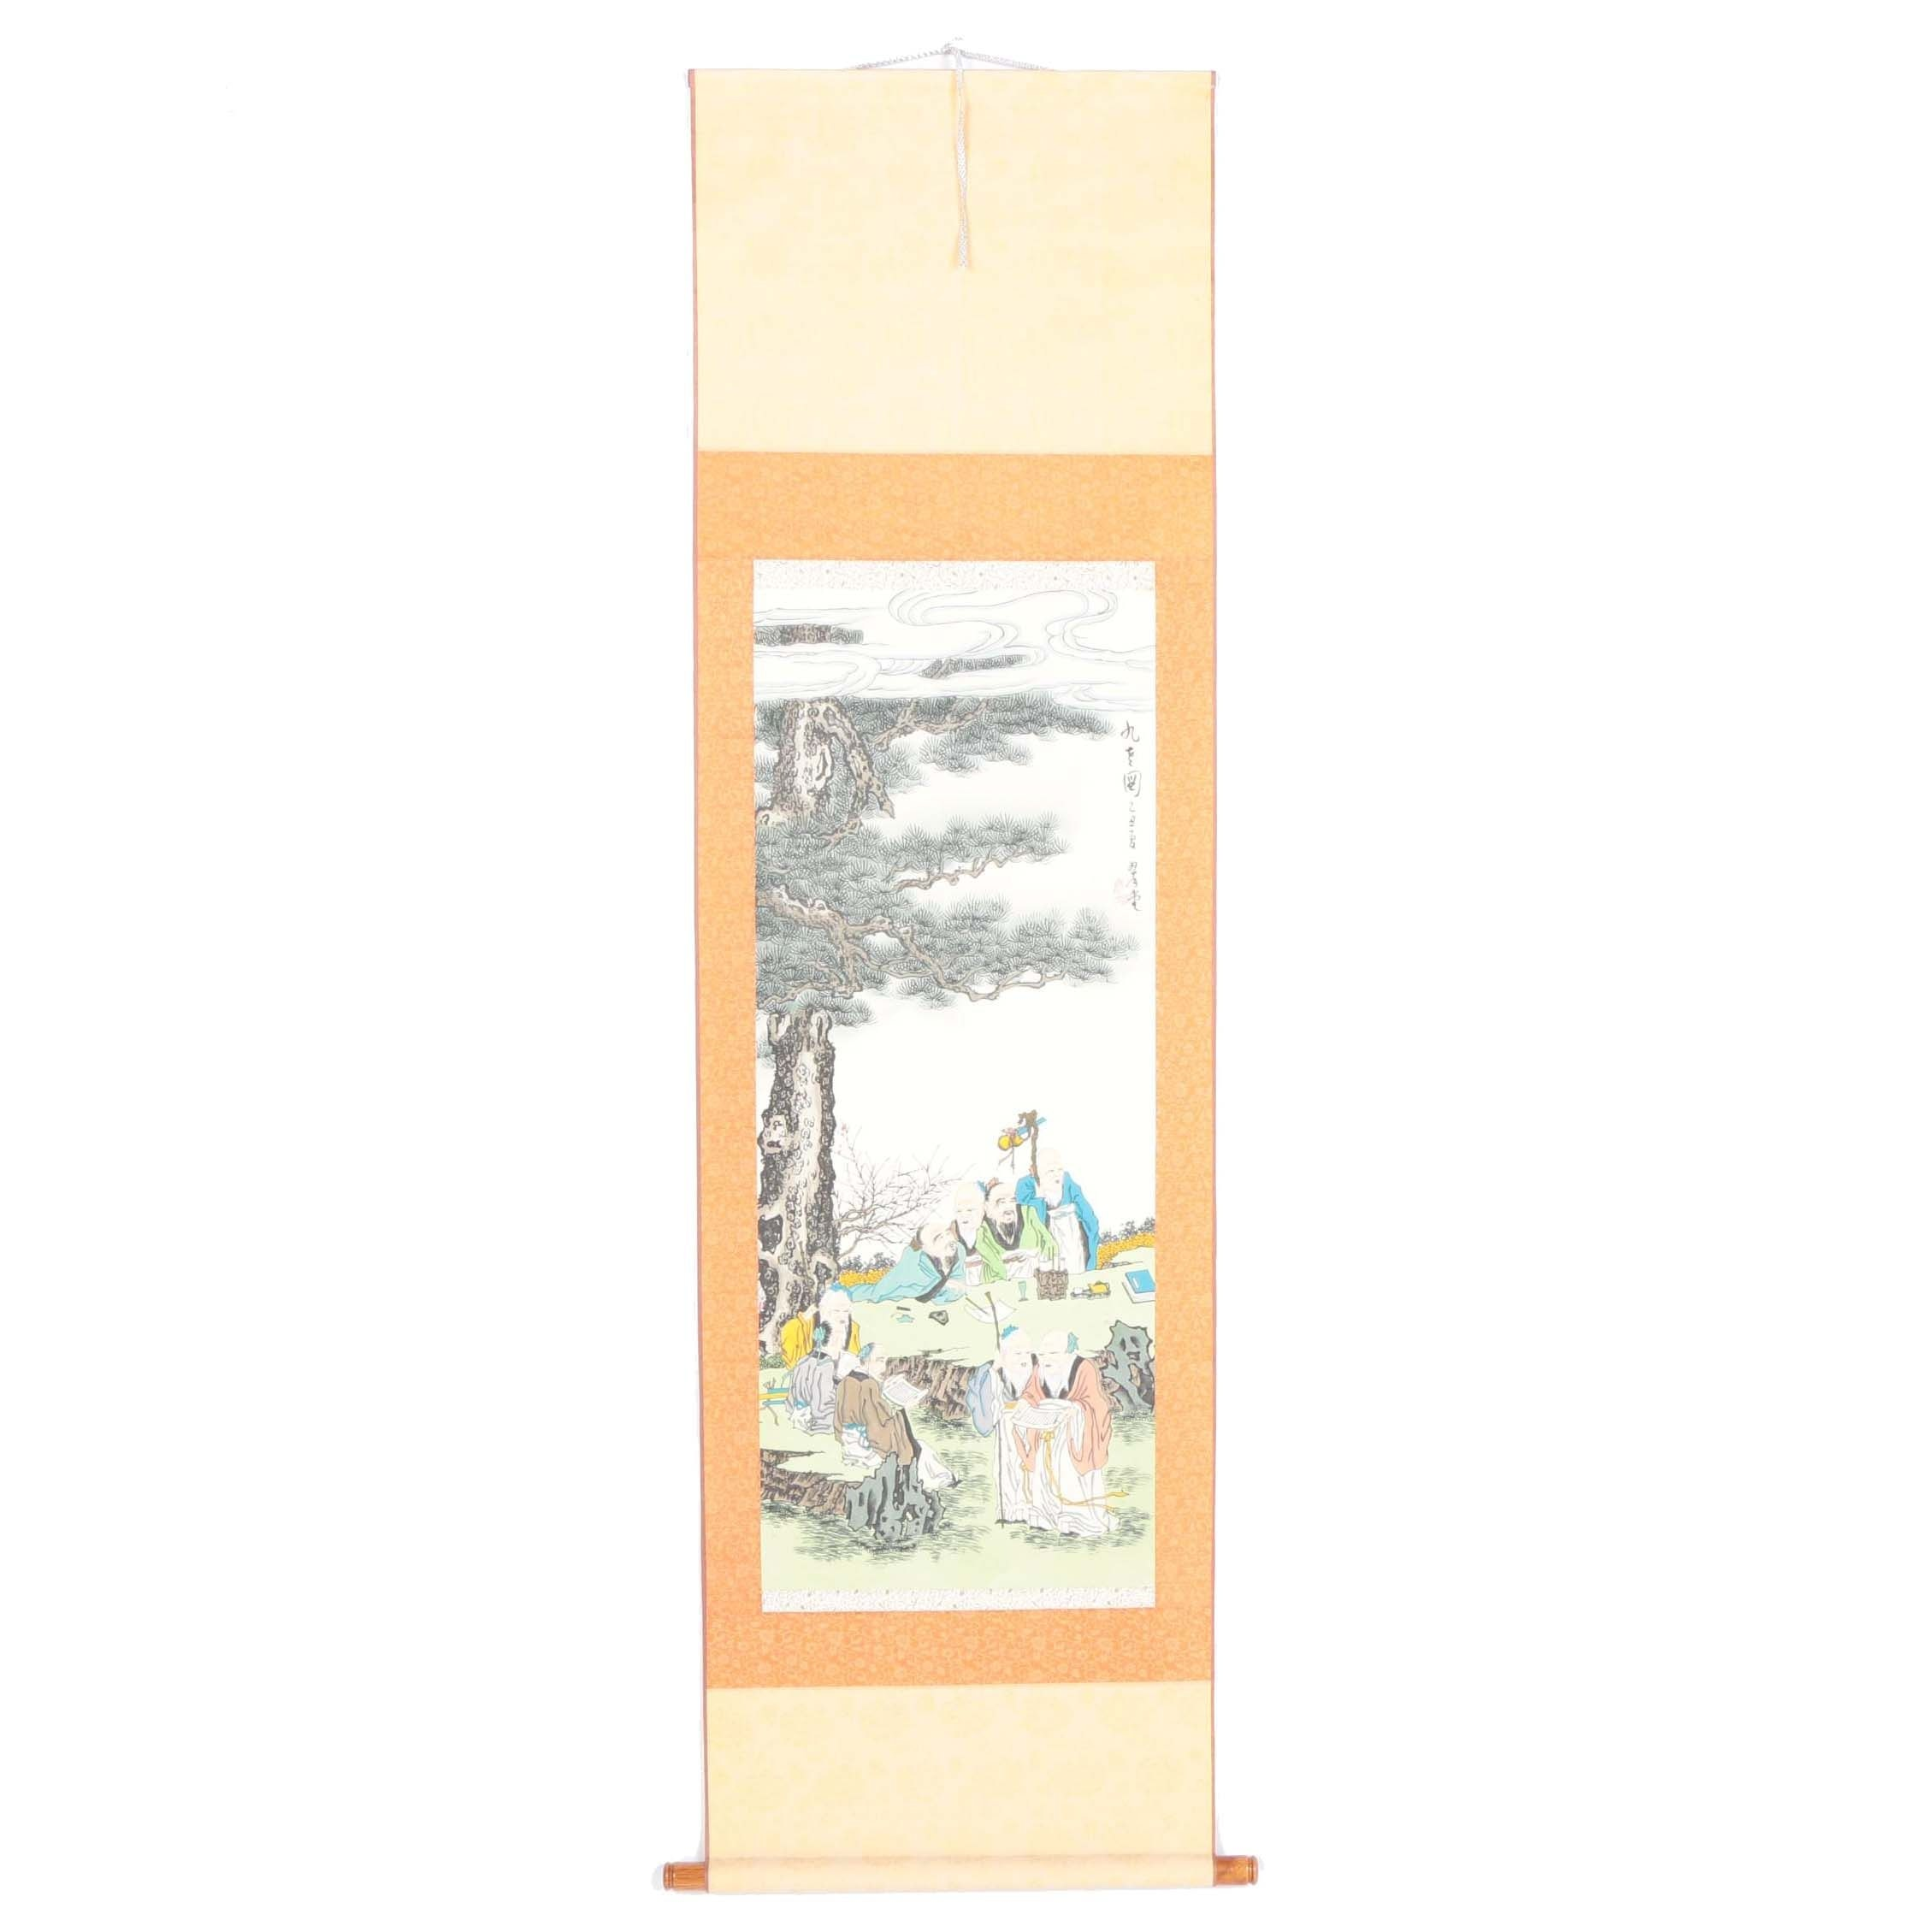 Ink and Watercolor Painting on Silk Hanging Scroll of Scholars Under a Tree